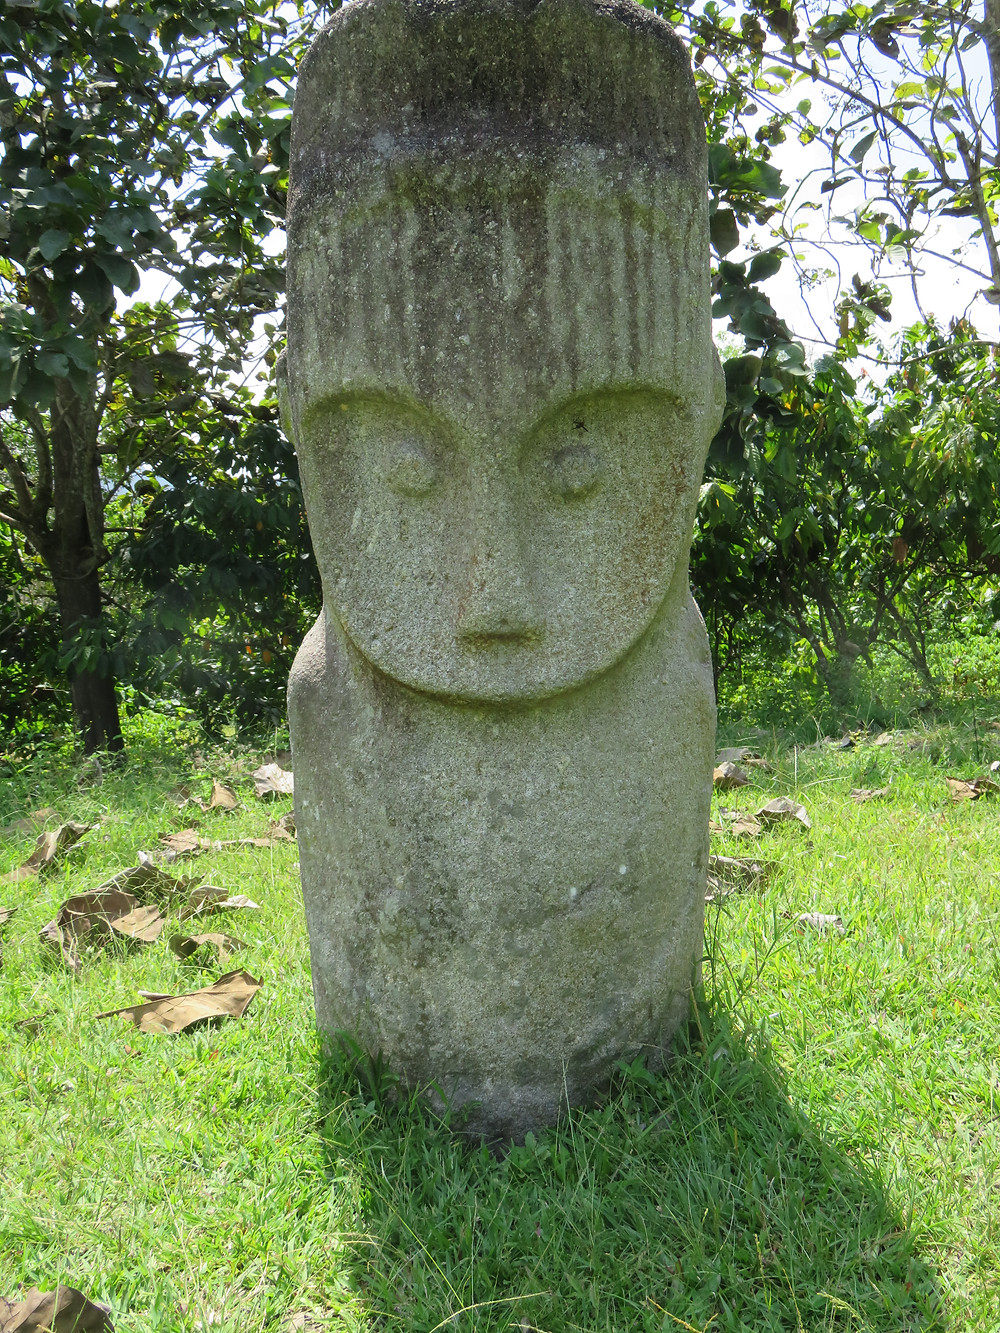 Sulawesi mother megalith